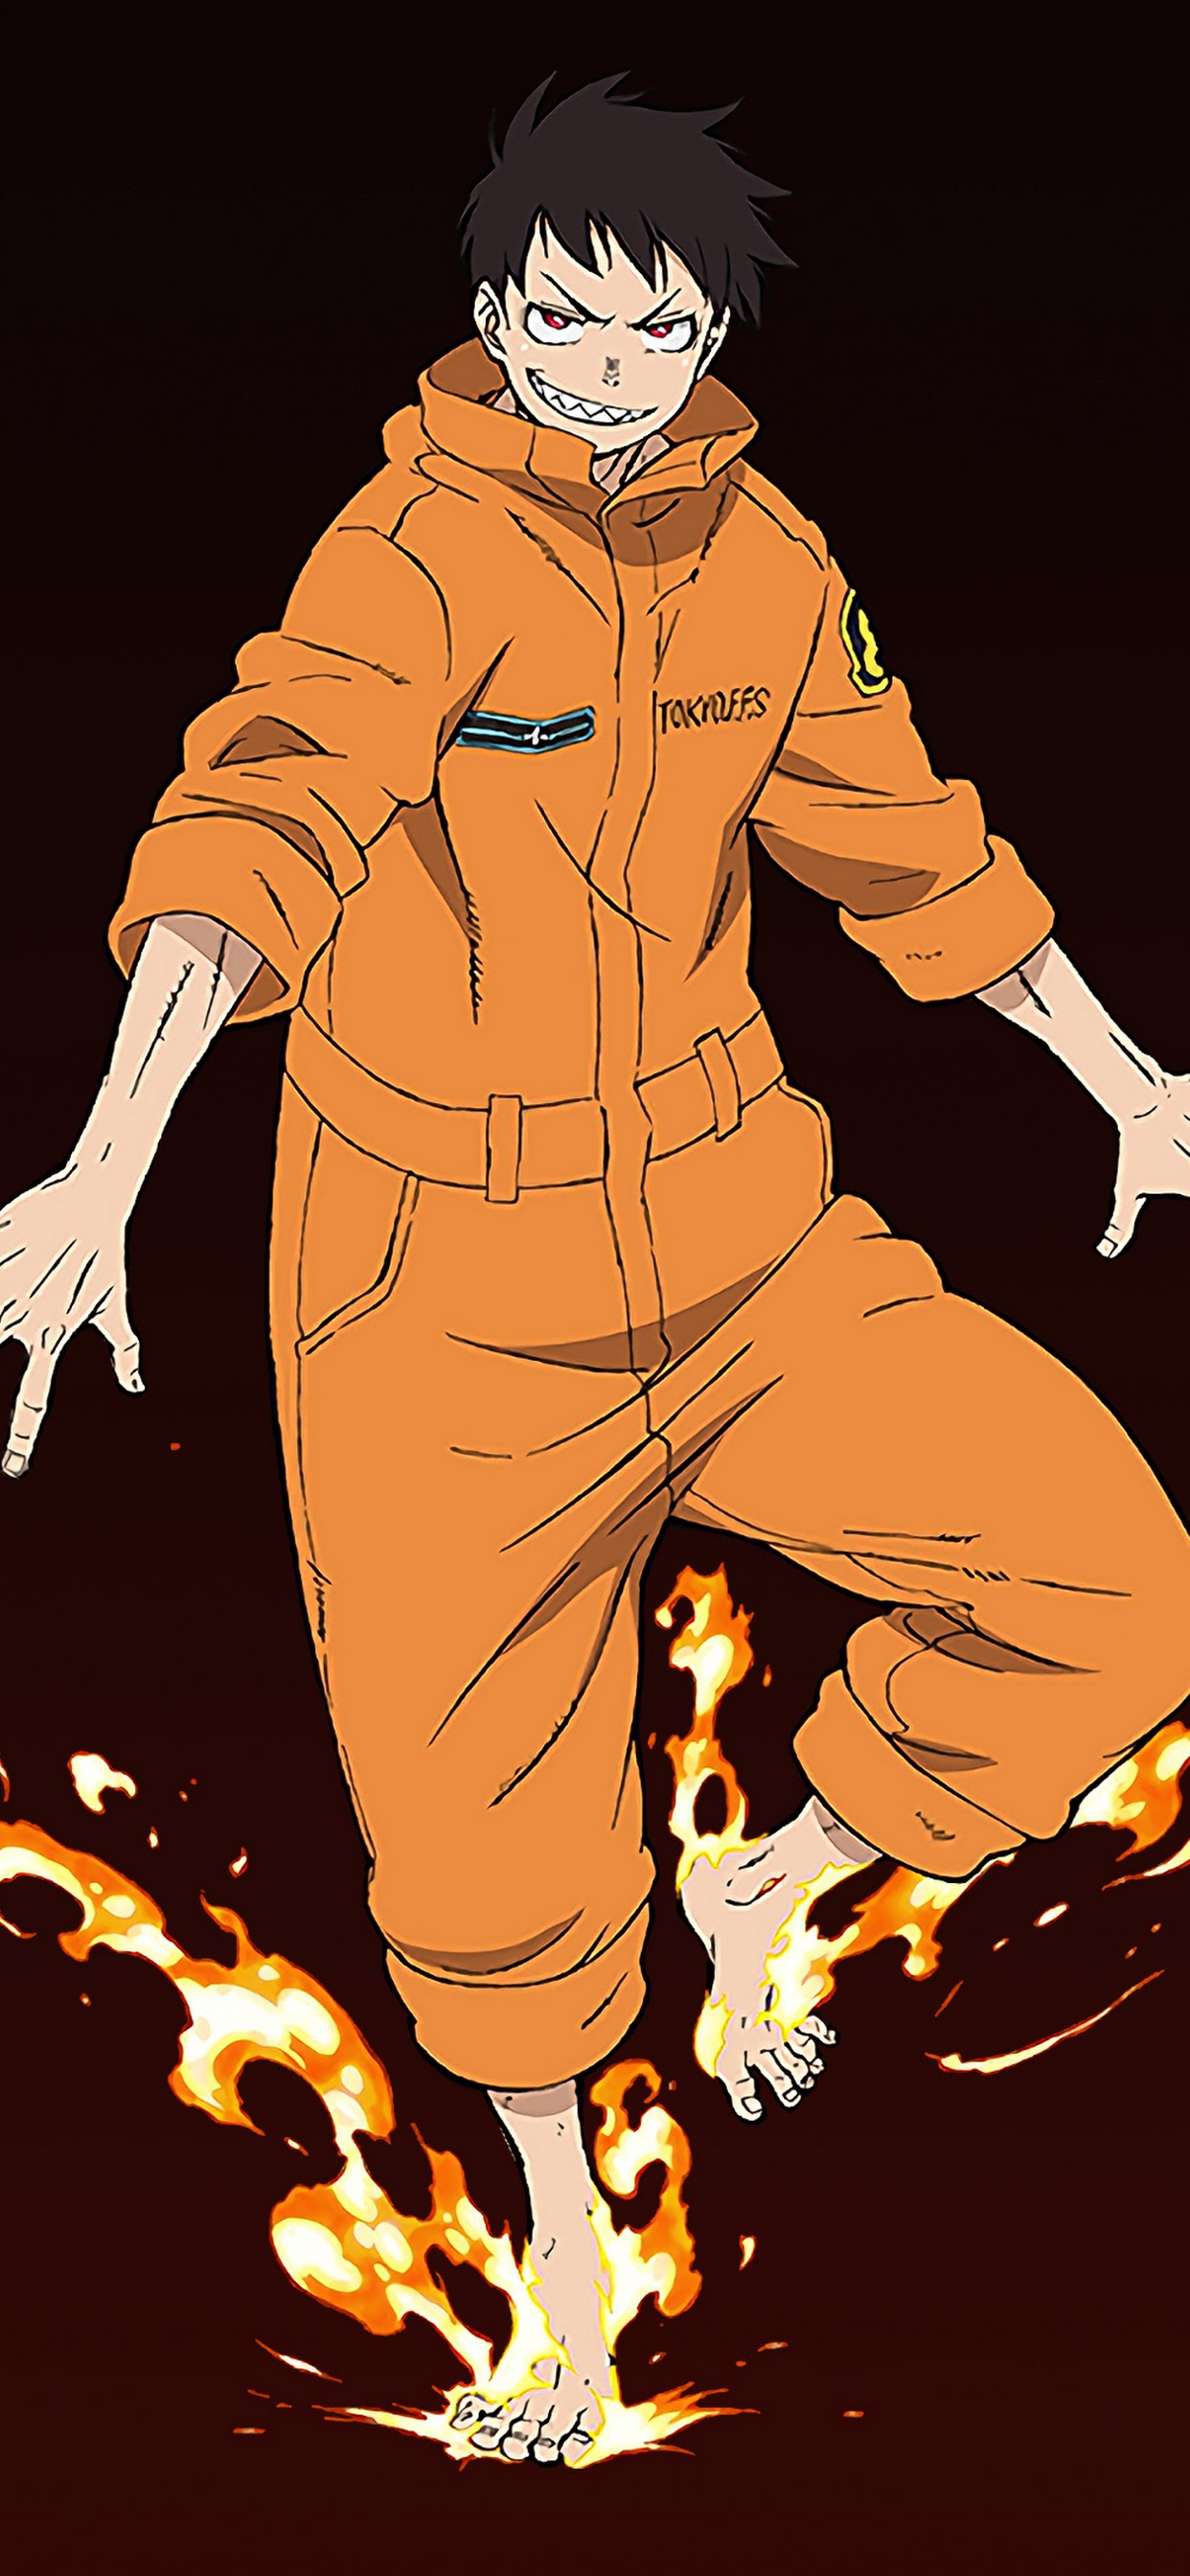 Fire Force Wallpaper Iphone X Anime Wallpapers Dark sky road iphone wallpaper. fire force wallpaper iphone x anime